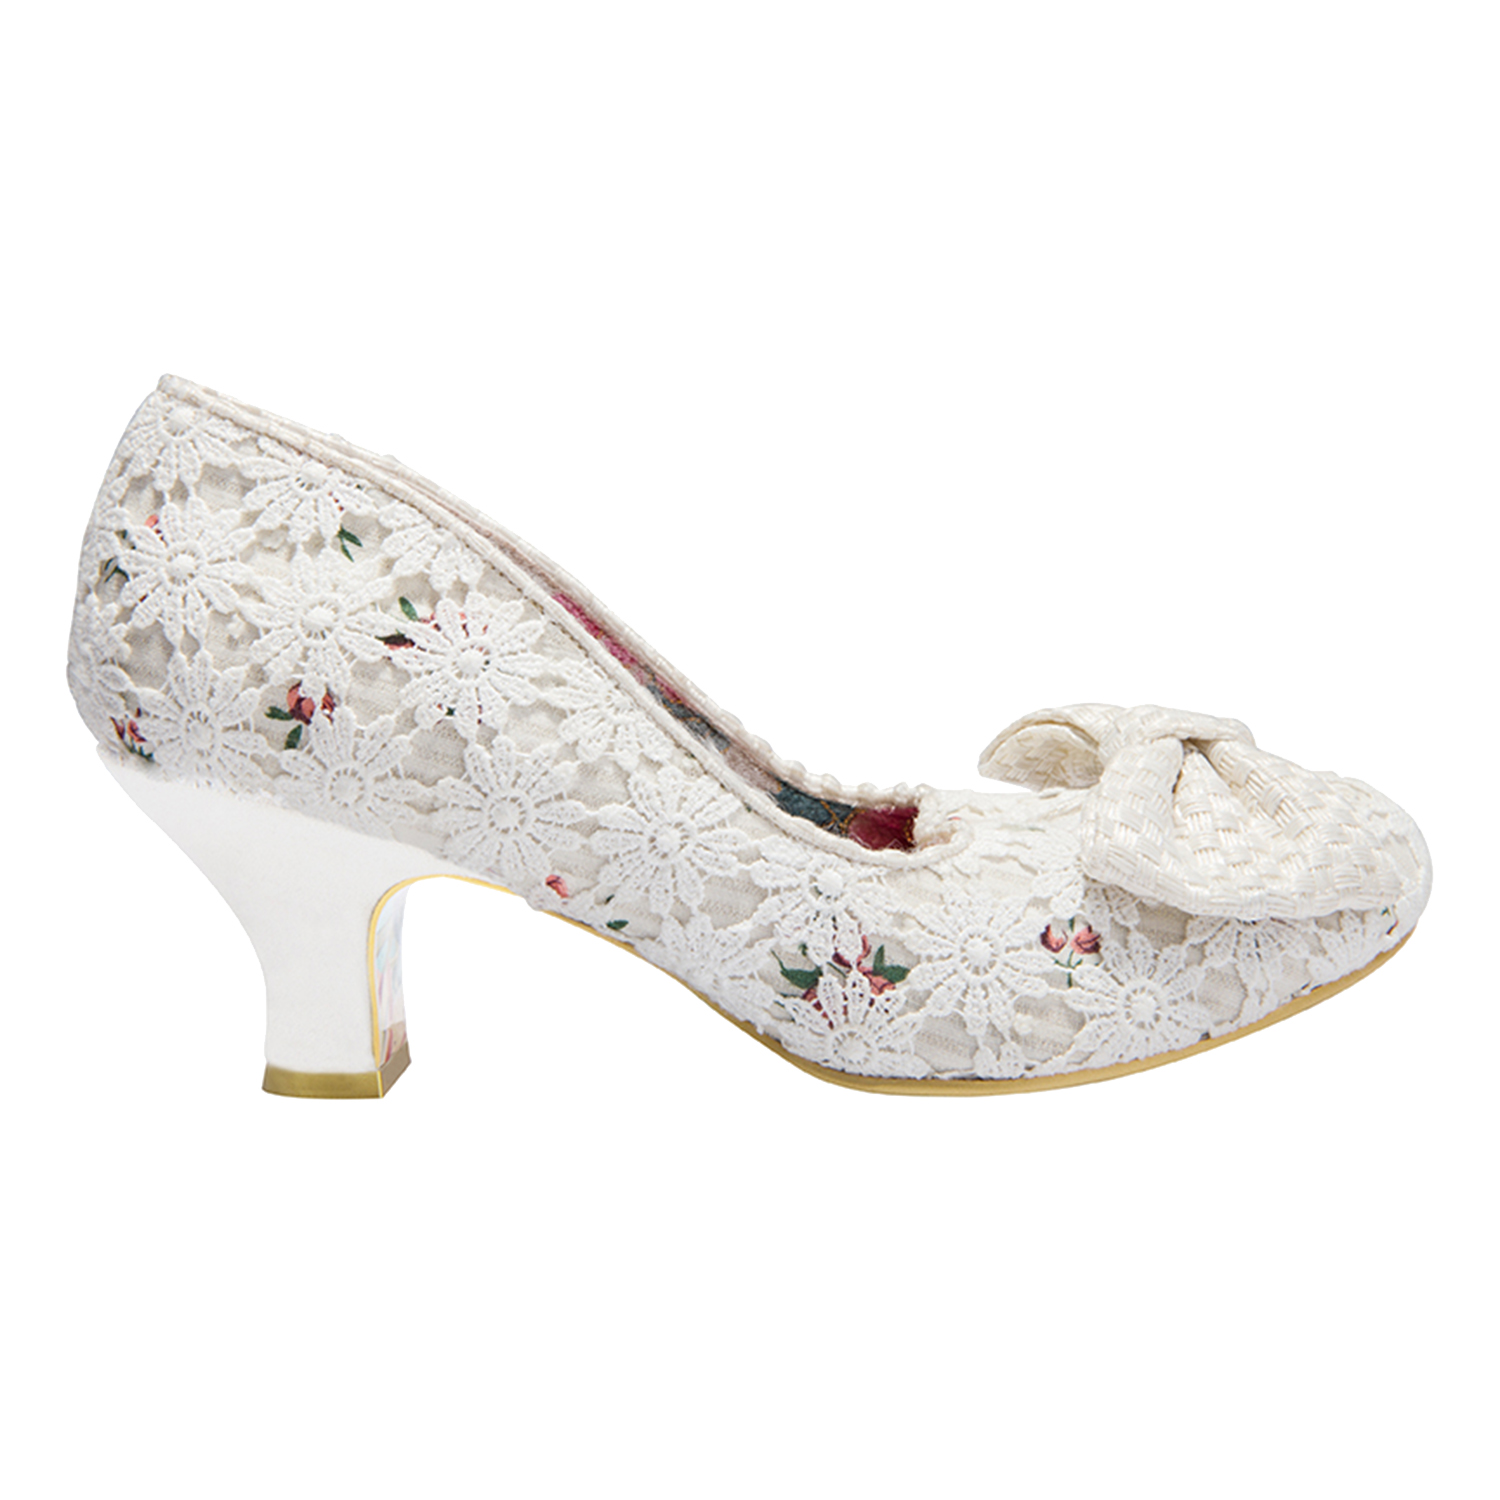 Cream Lace Shoes And Bag